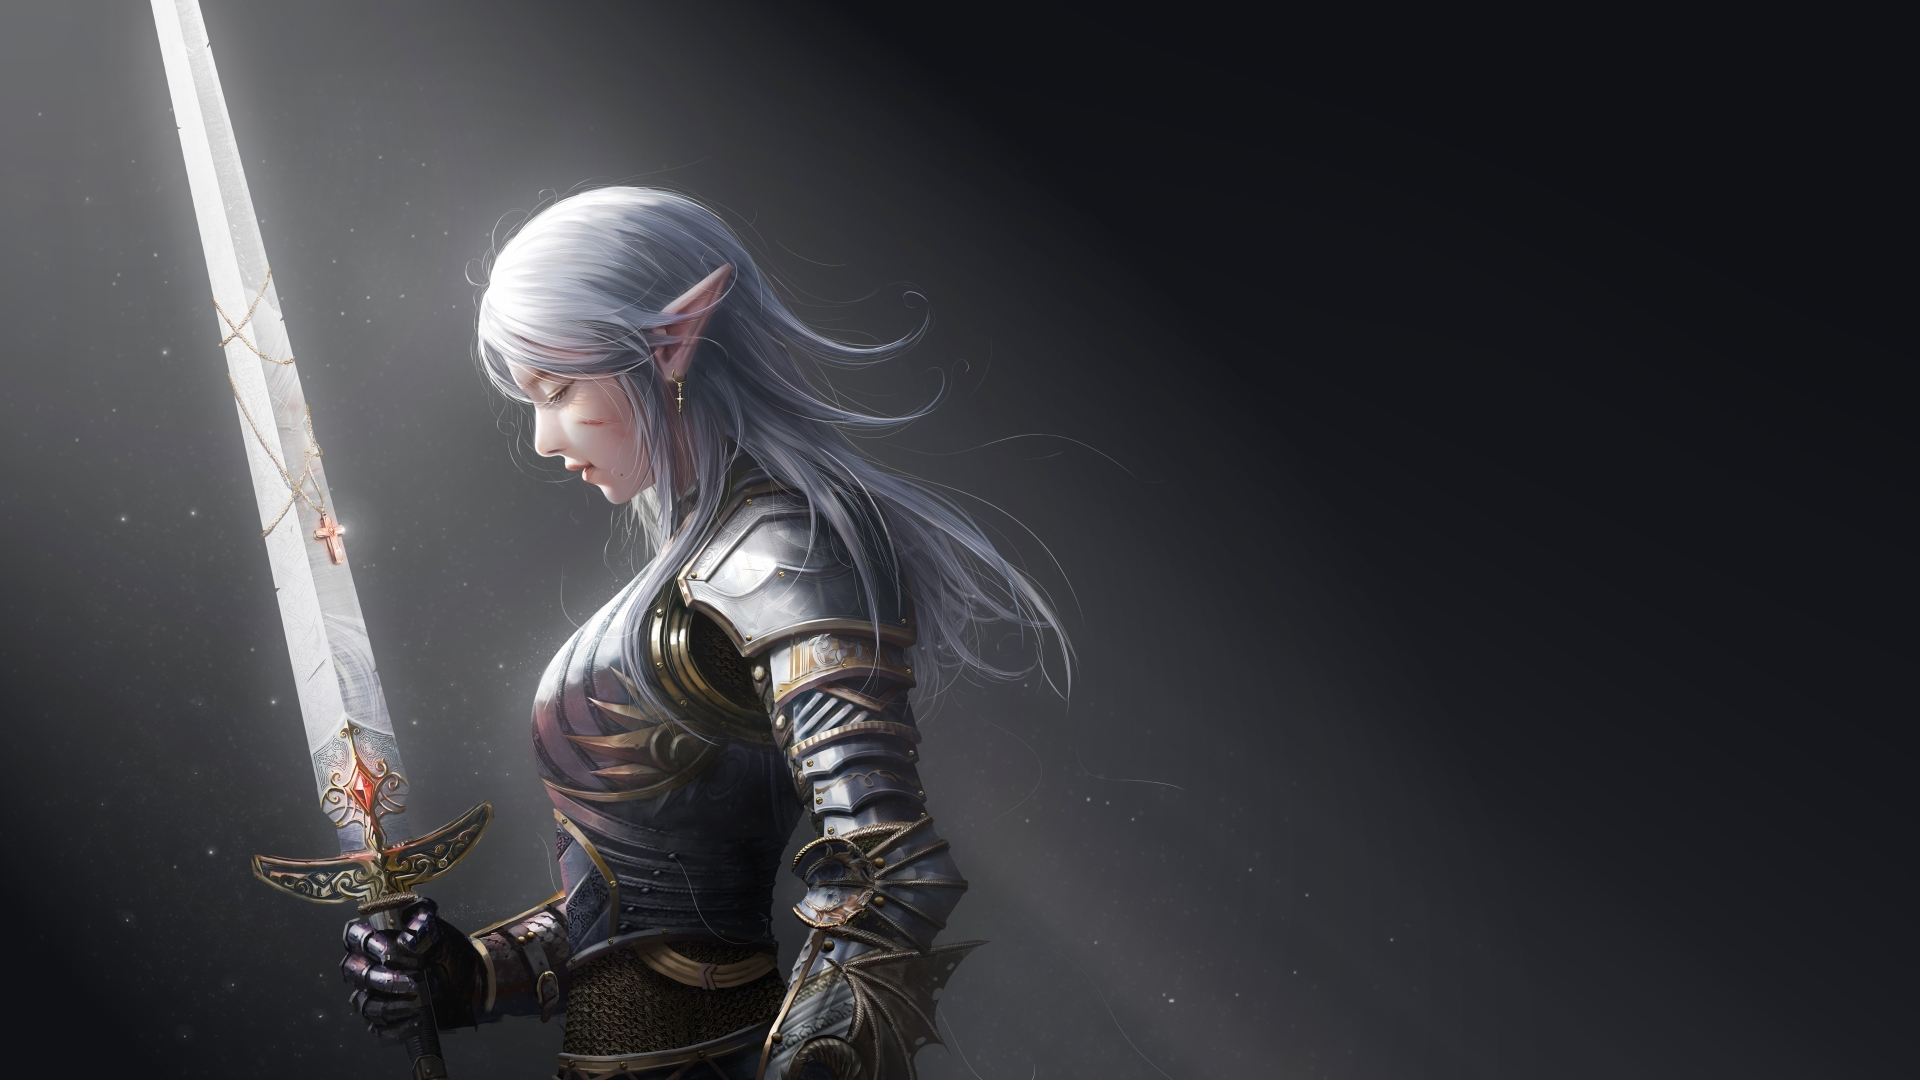 1920x1080 Elf Warrior 1080p Laptop Full Hd Wallpaper Hd Fantasy 4k Wallpapers Images Photos And Background